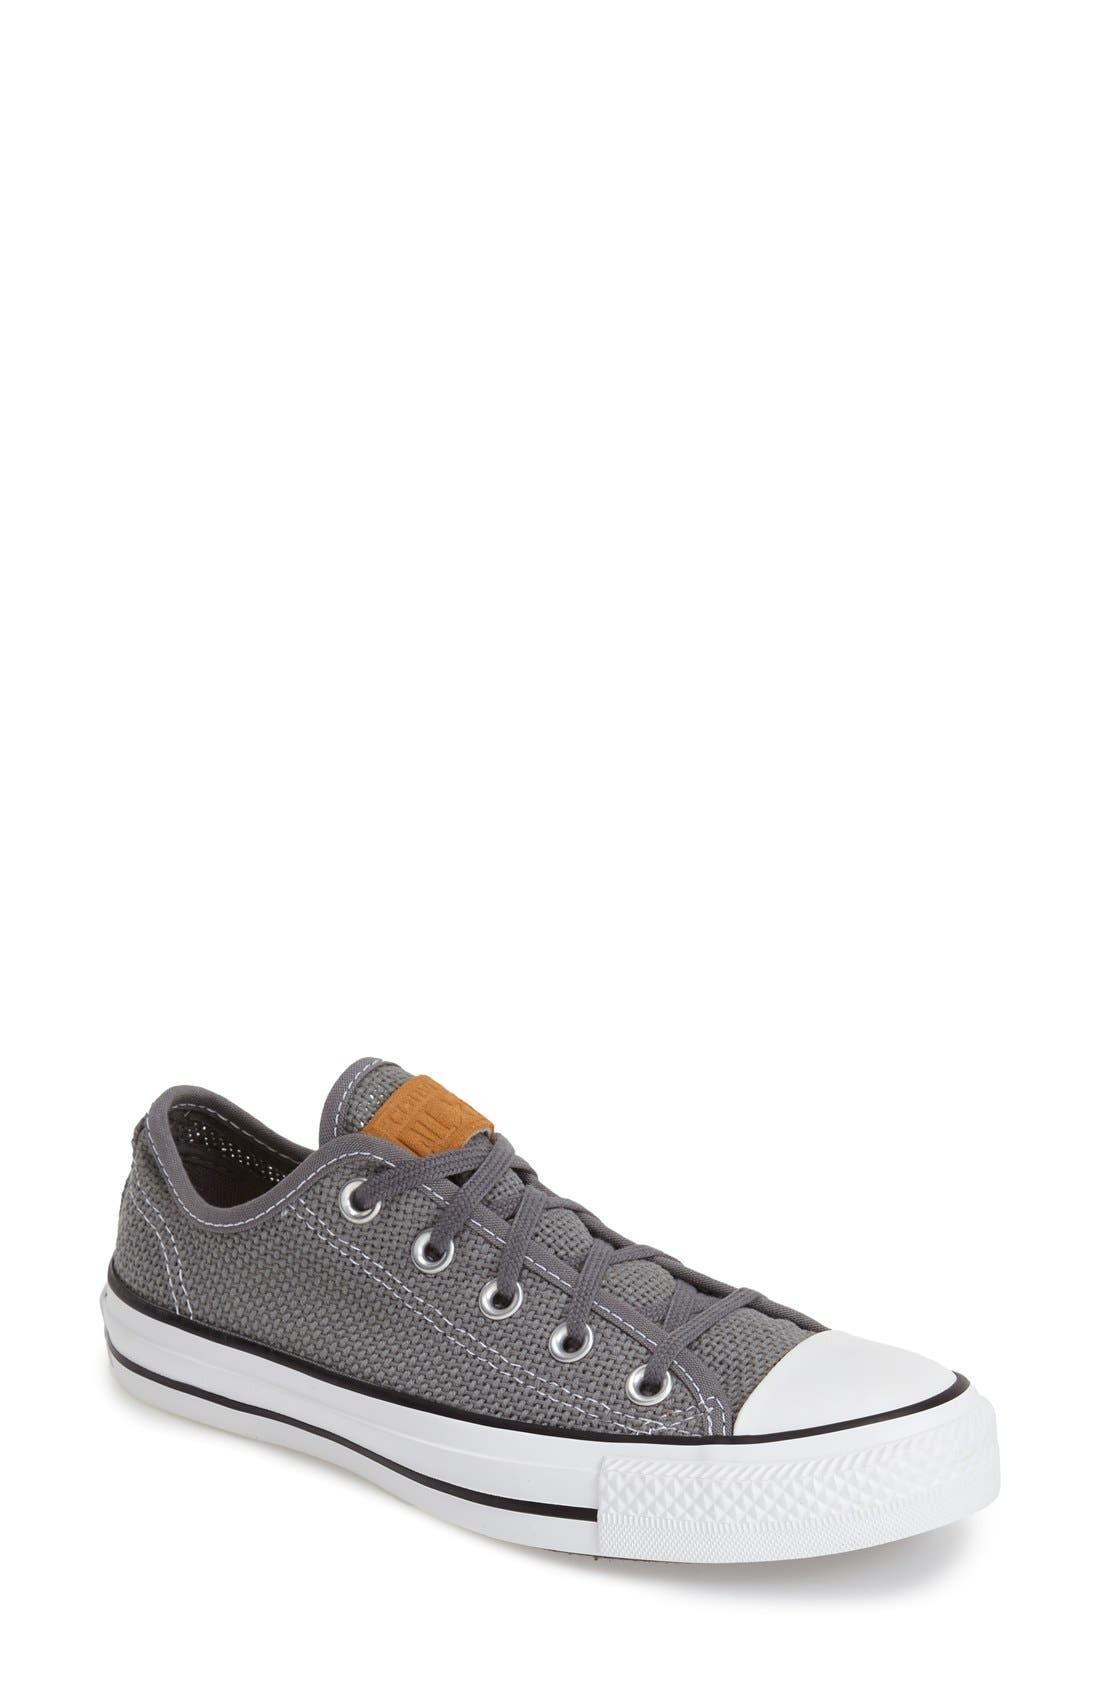 Alternate Image 1 Selected - Converse Chuck Taylor® All Star® Woven Sneaker (Women)